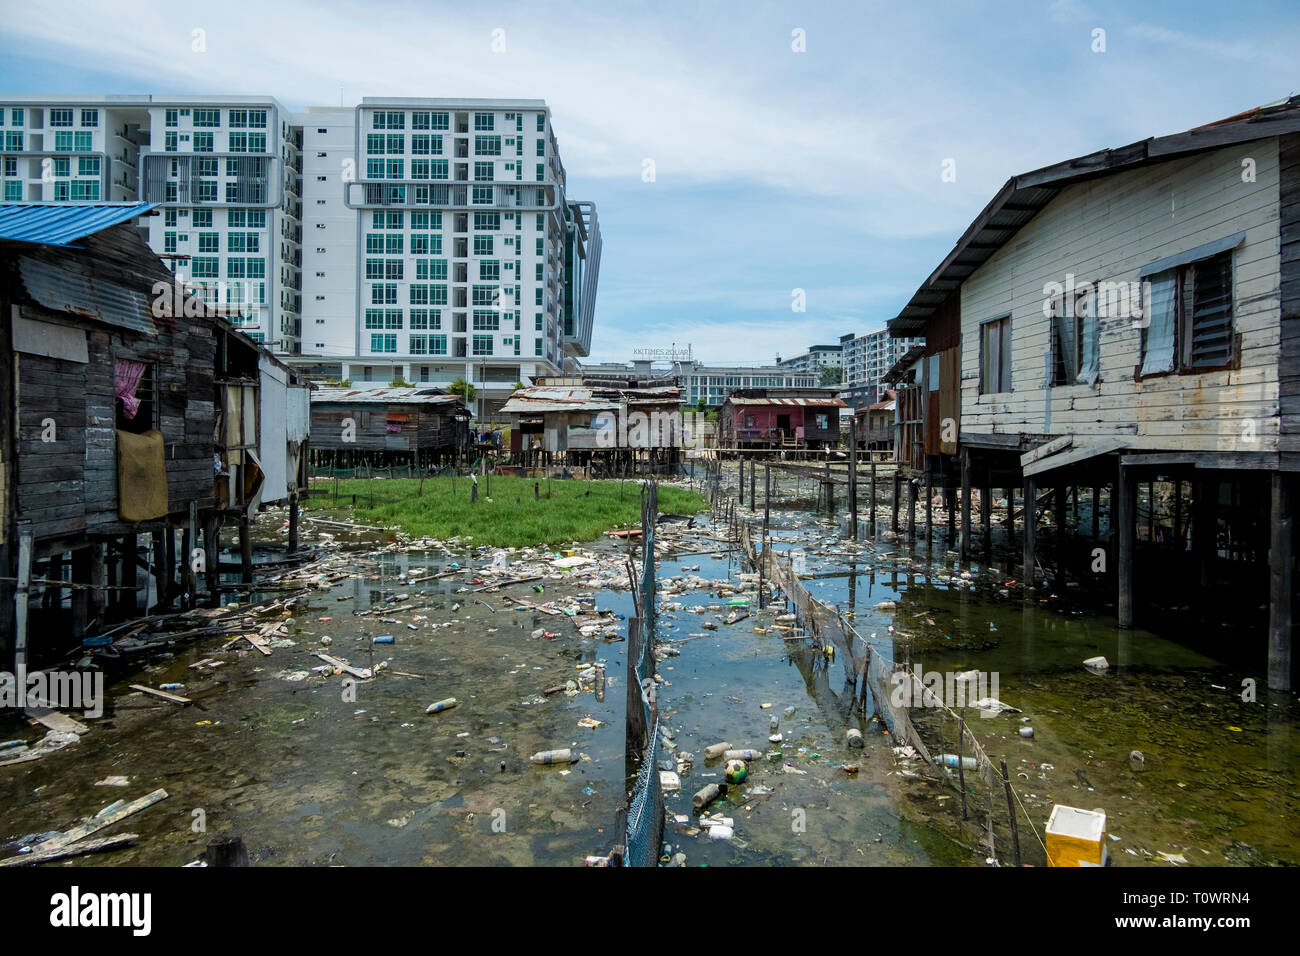 A traditional stilt house water village settlement sits in front of modern development in Kota Kinabalu, Sabah, Borneo, Malaysia. - Stock Image